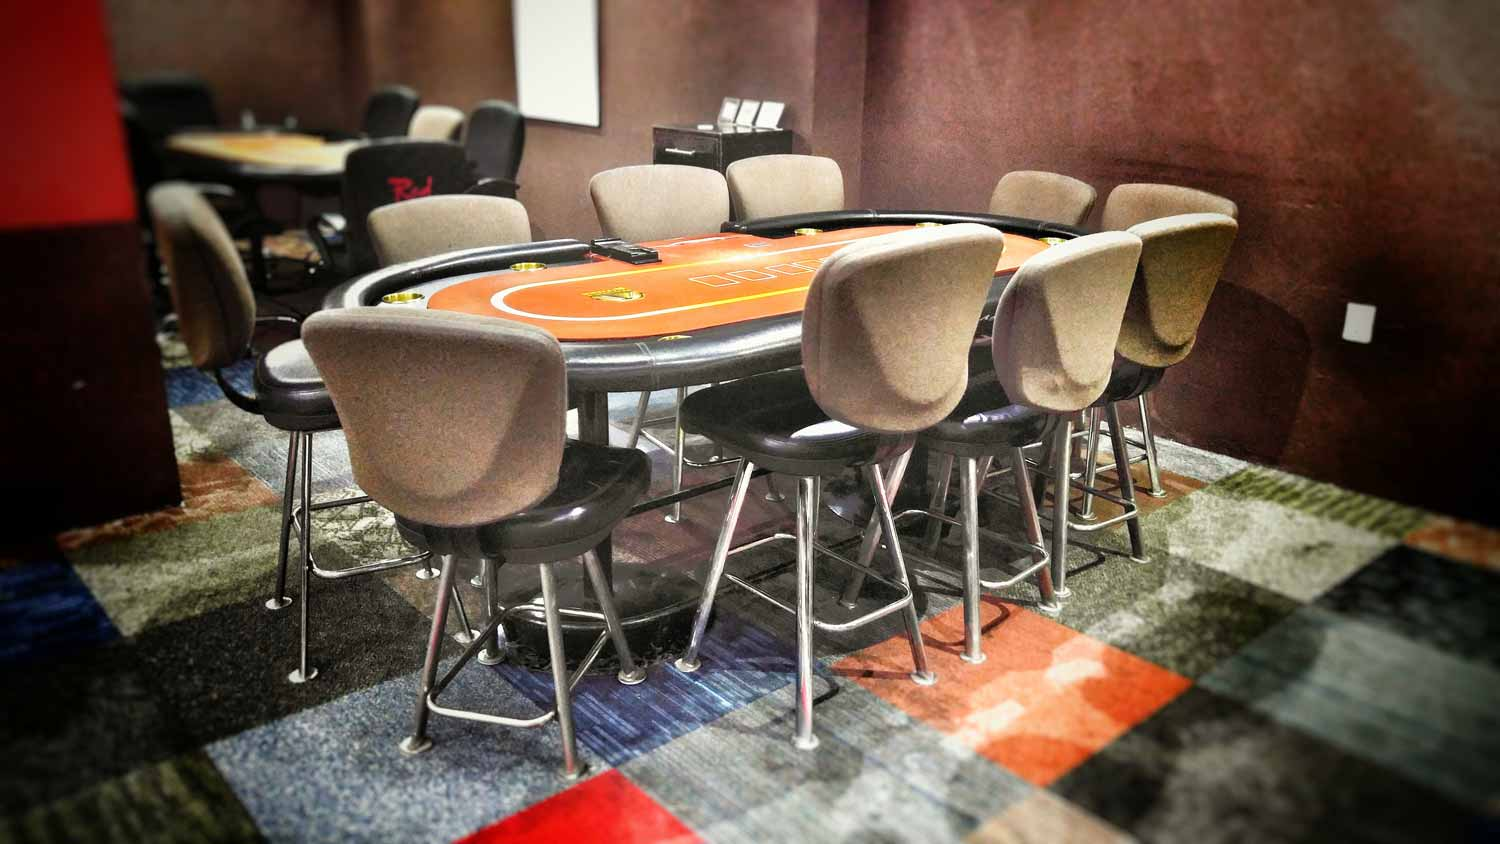 Several Texas Hold Em' poker tables at the small casino in Playa Del Carmen.